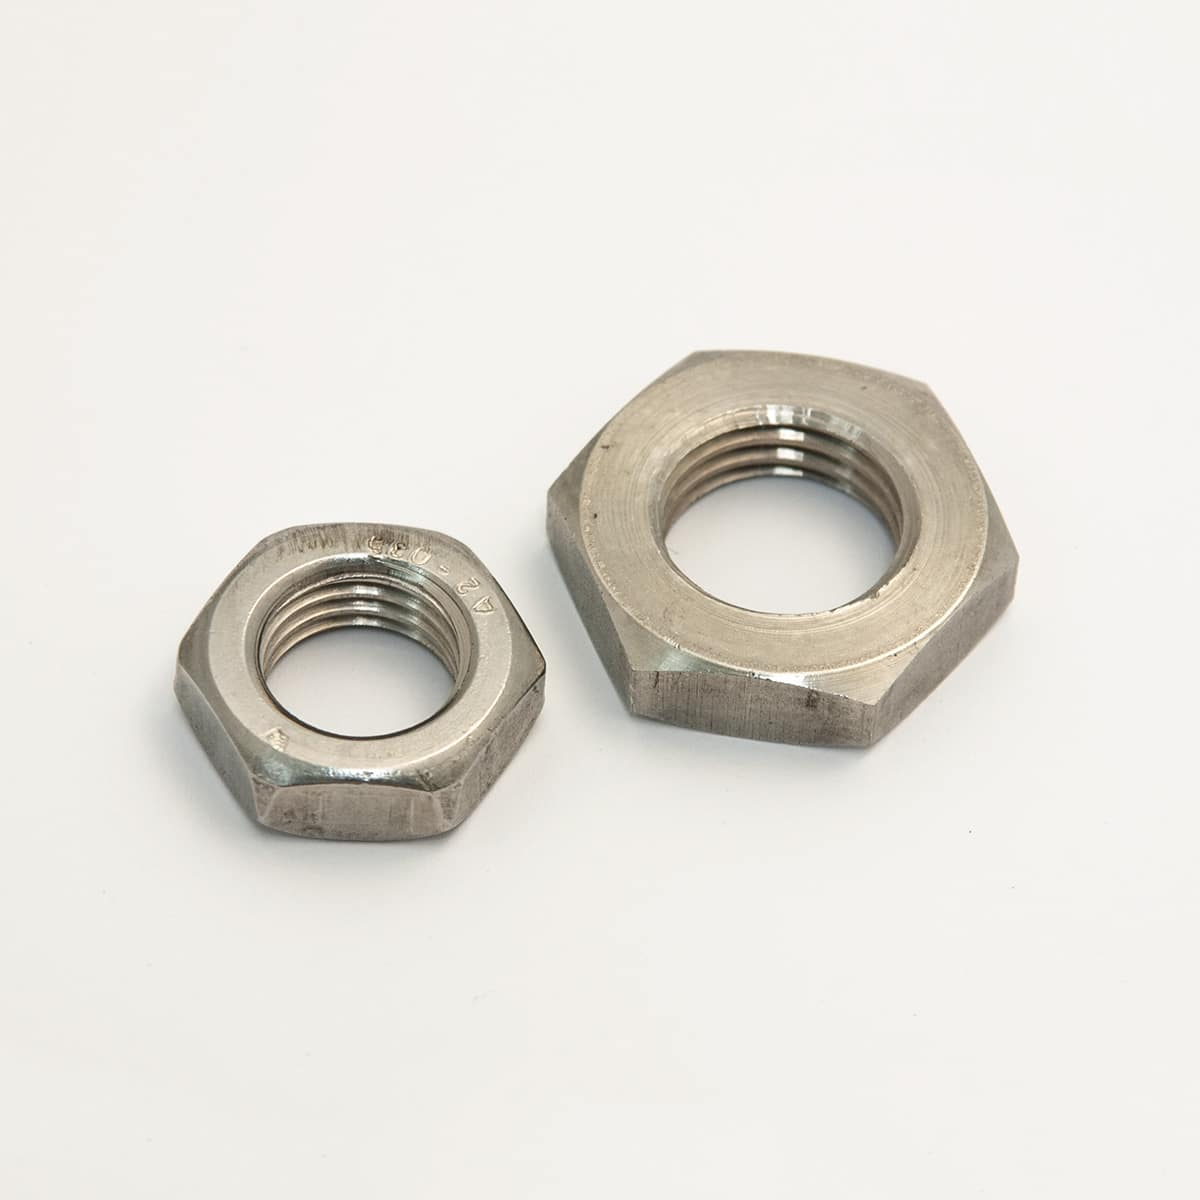 Short hexagonal nuts